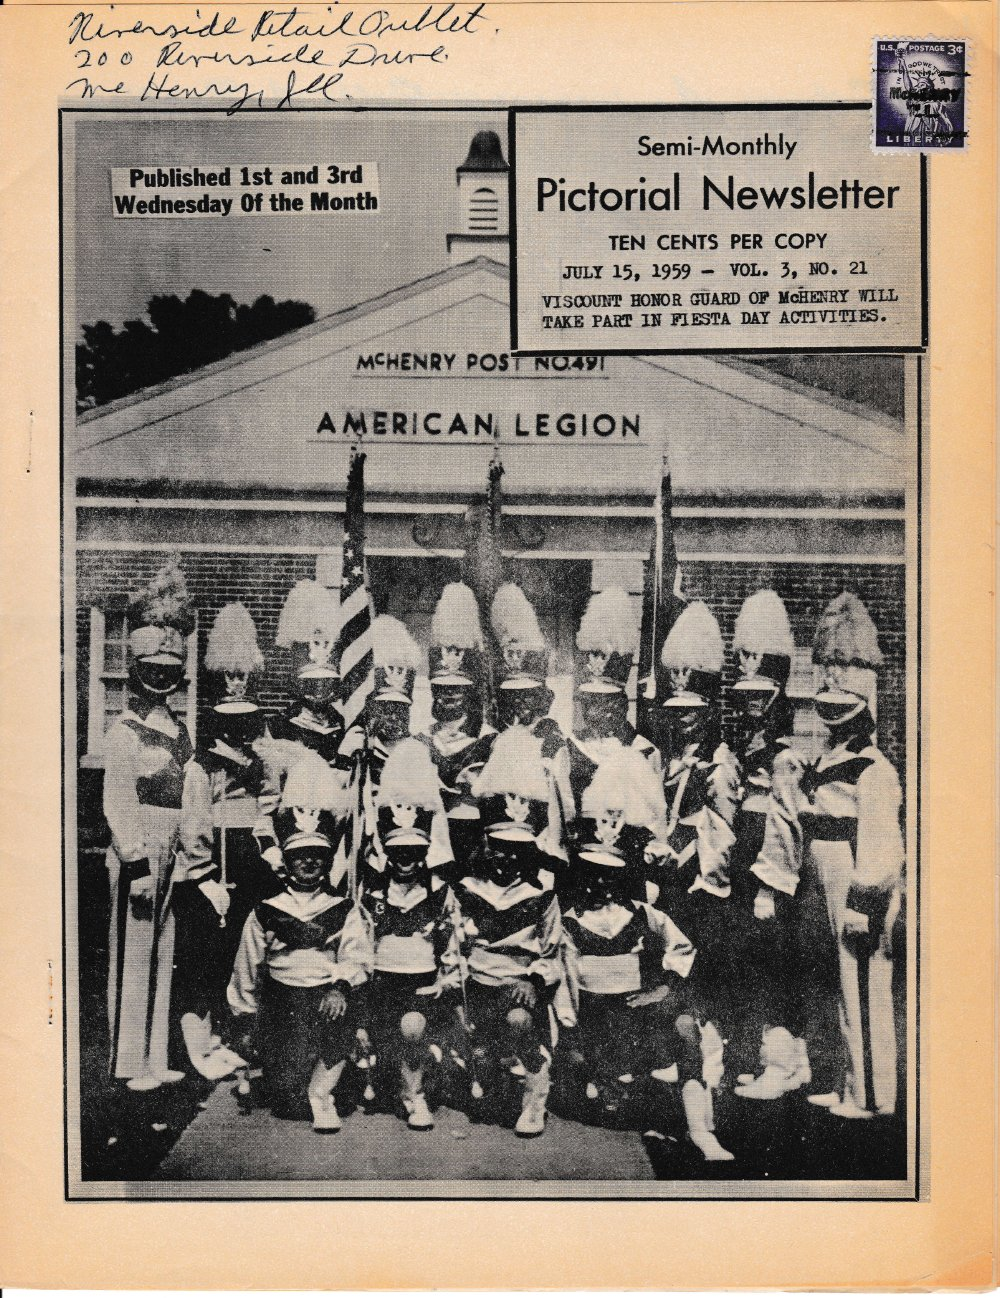 The Pictorial Newsletter: July 15, 1959